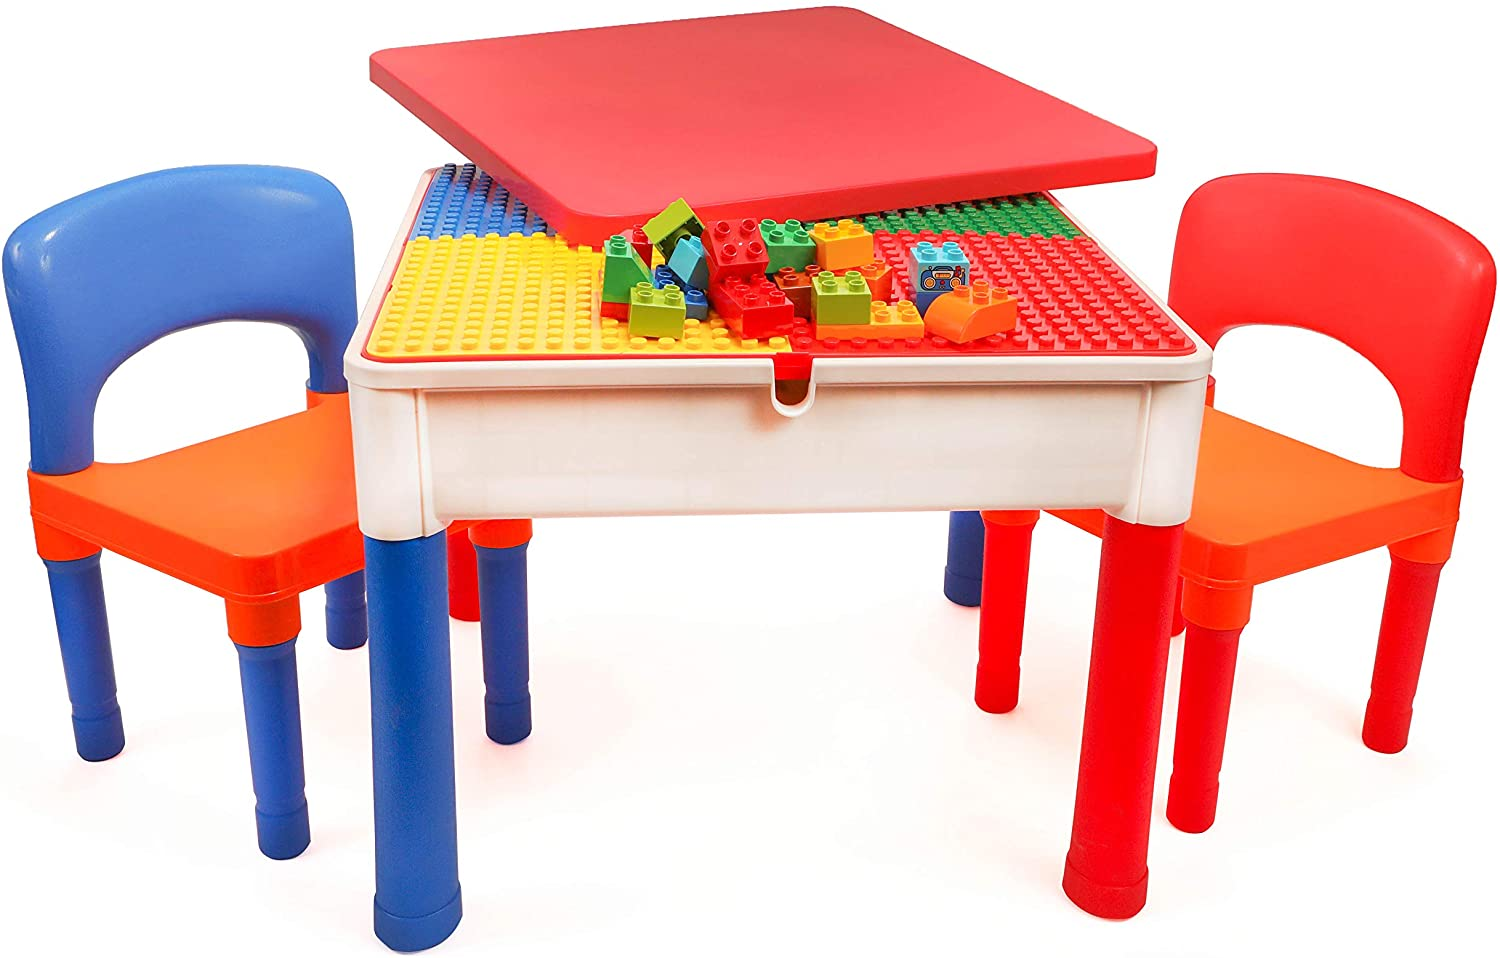 Smart Builder Toys 3 in 1 Lego Tables with Storage and chair set